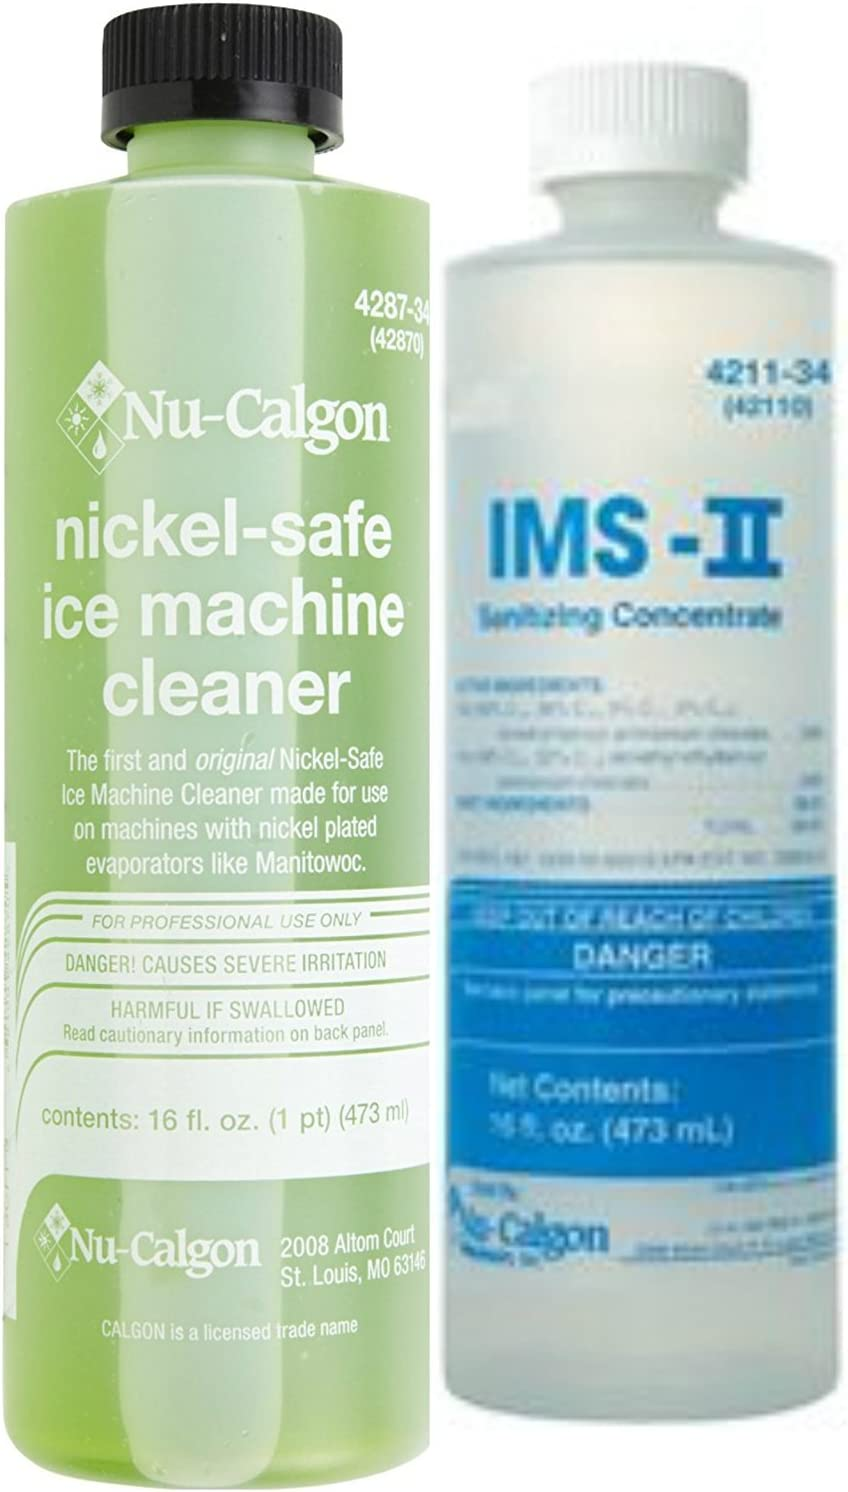 Nu-Calgon 428734 Ice Machine Cleaner 16 oz and Ice Machine Sanitizer, No Rinse, 1 Pint - Cleaning and Sanitizing Bundle